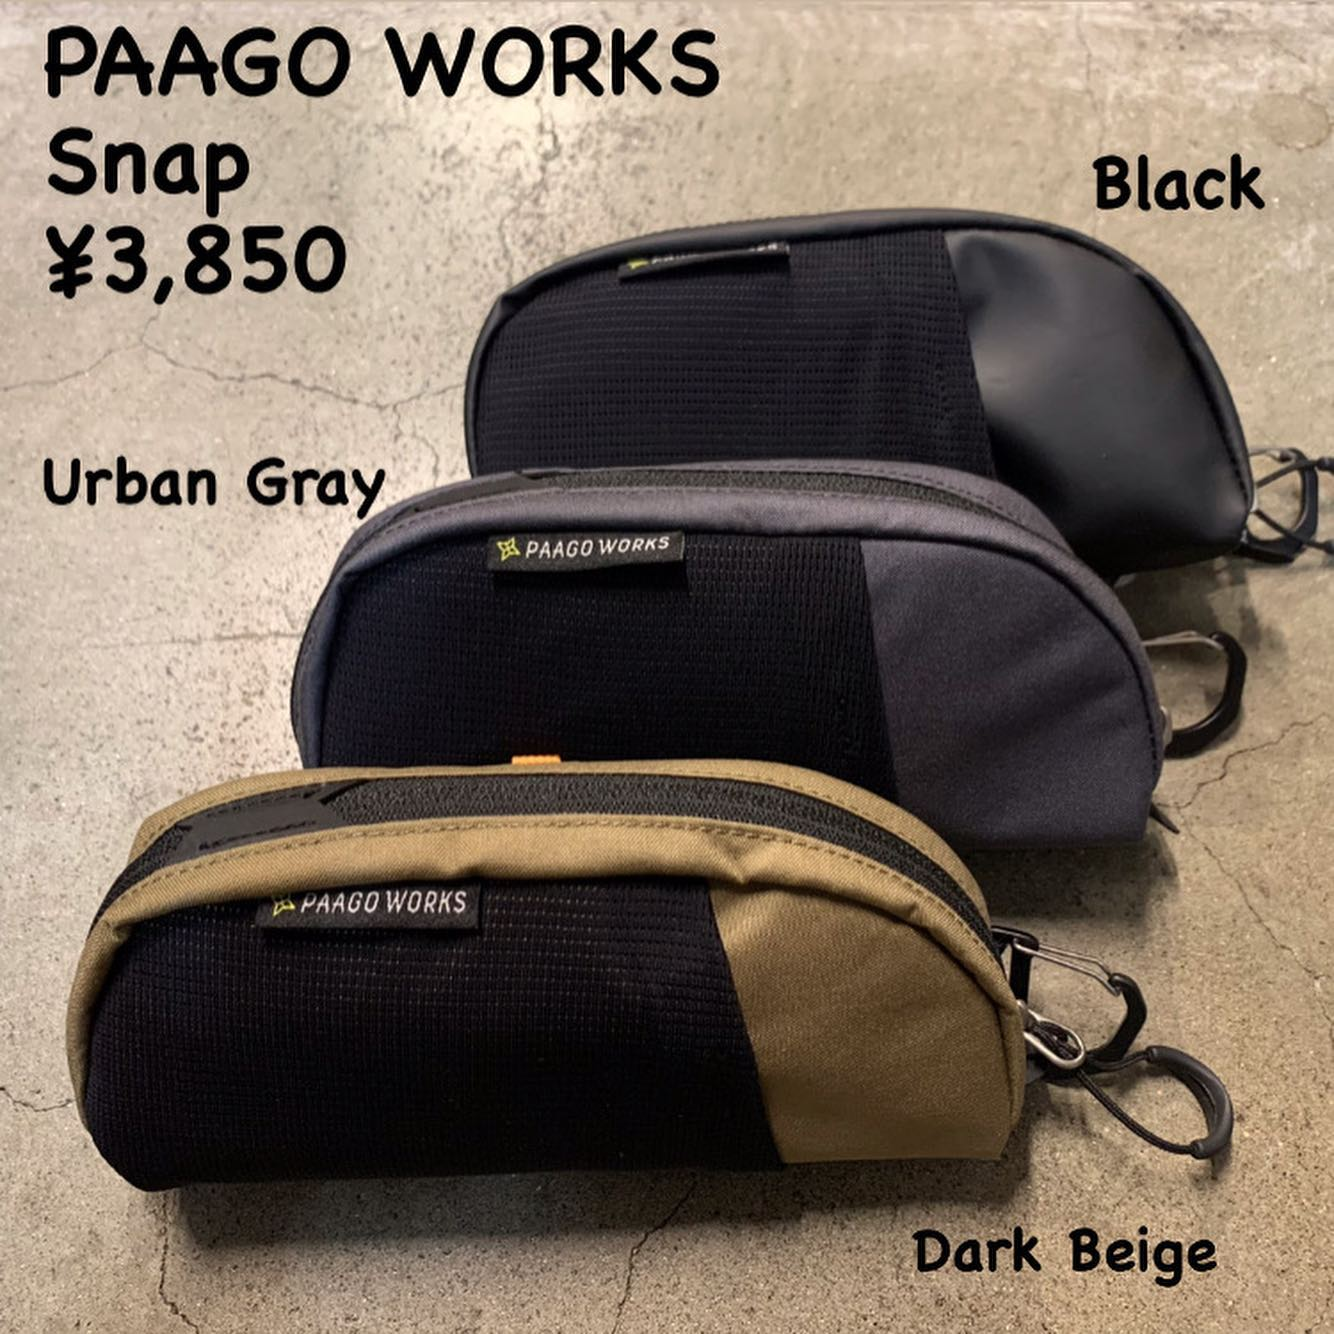 『PAAGO WORKS スナップ』再入荷のお知らせ